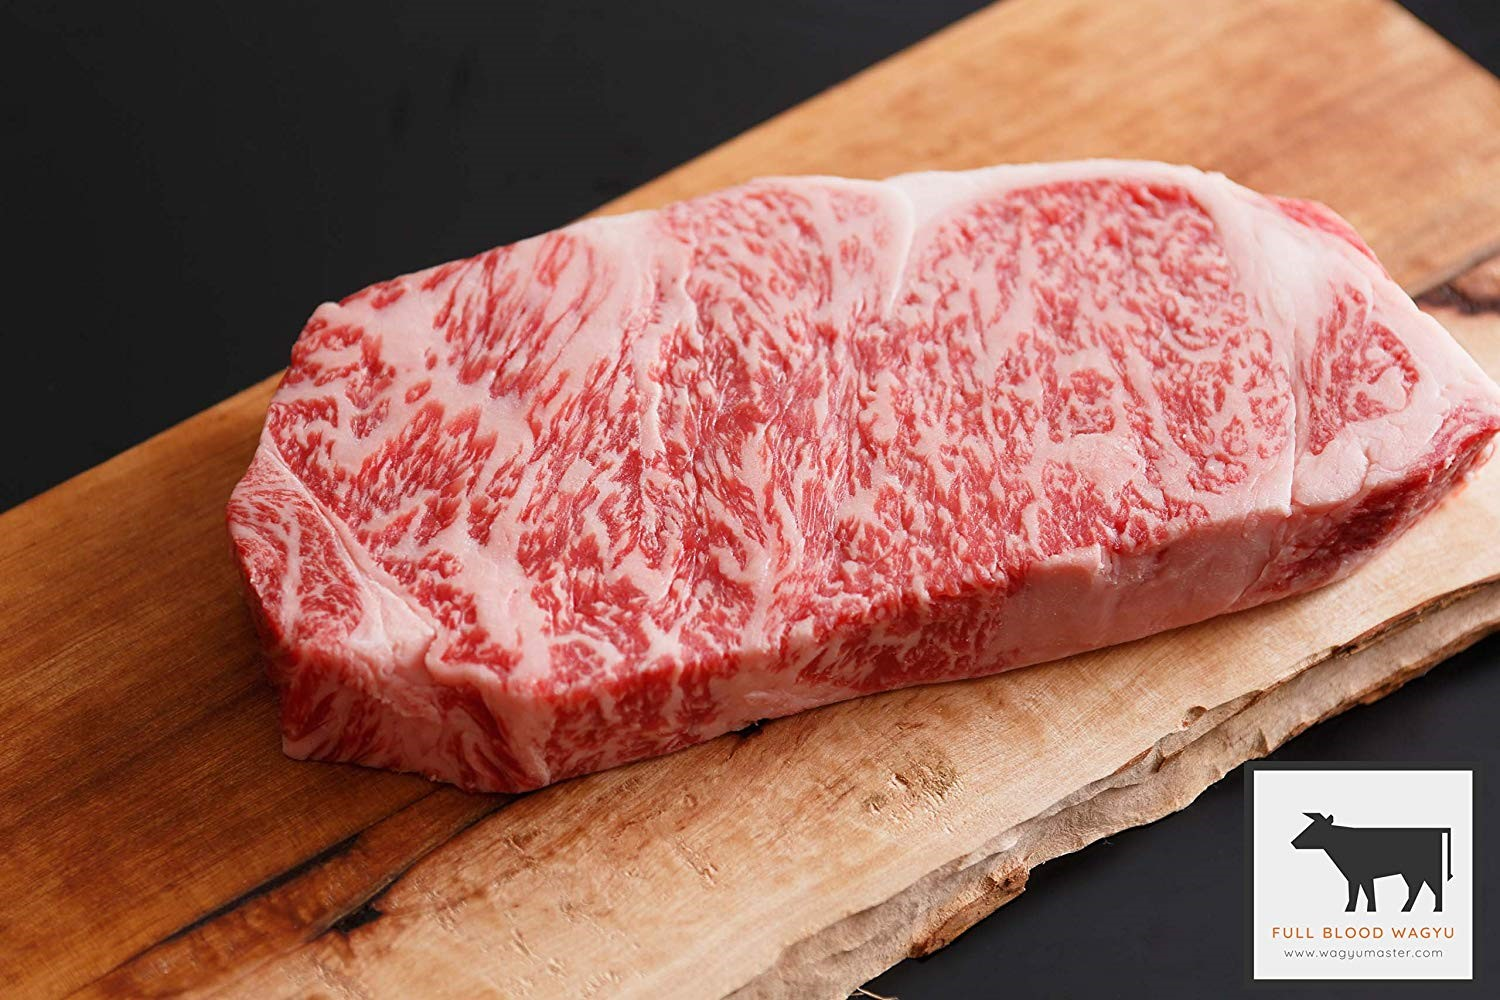 wagyu beef on a wooden cutting board